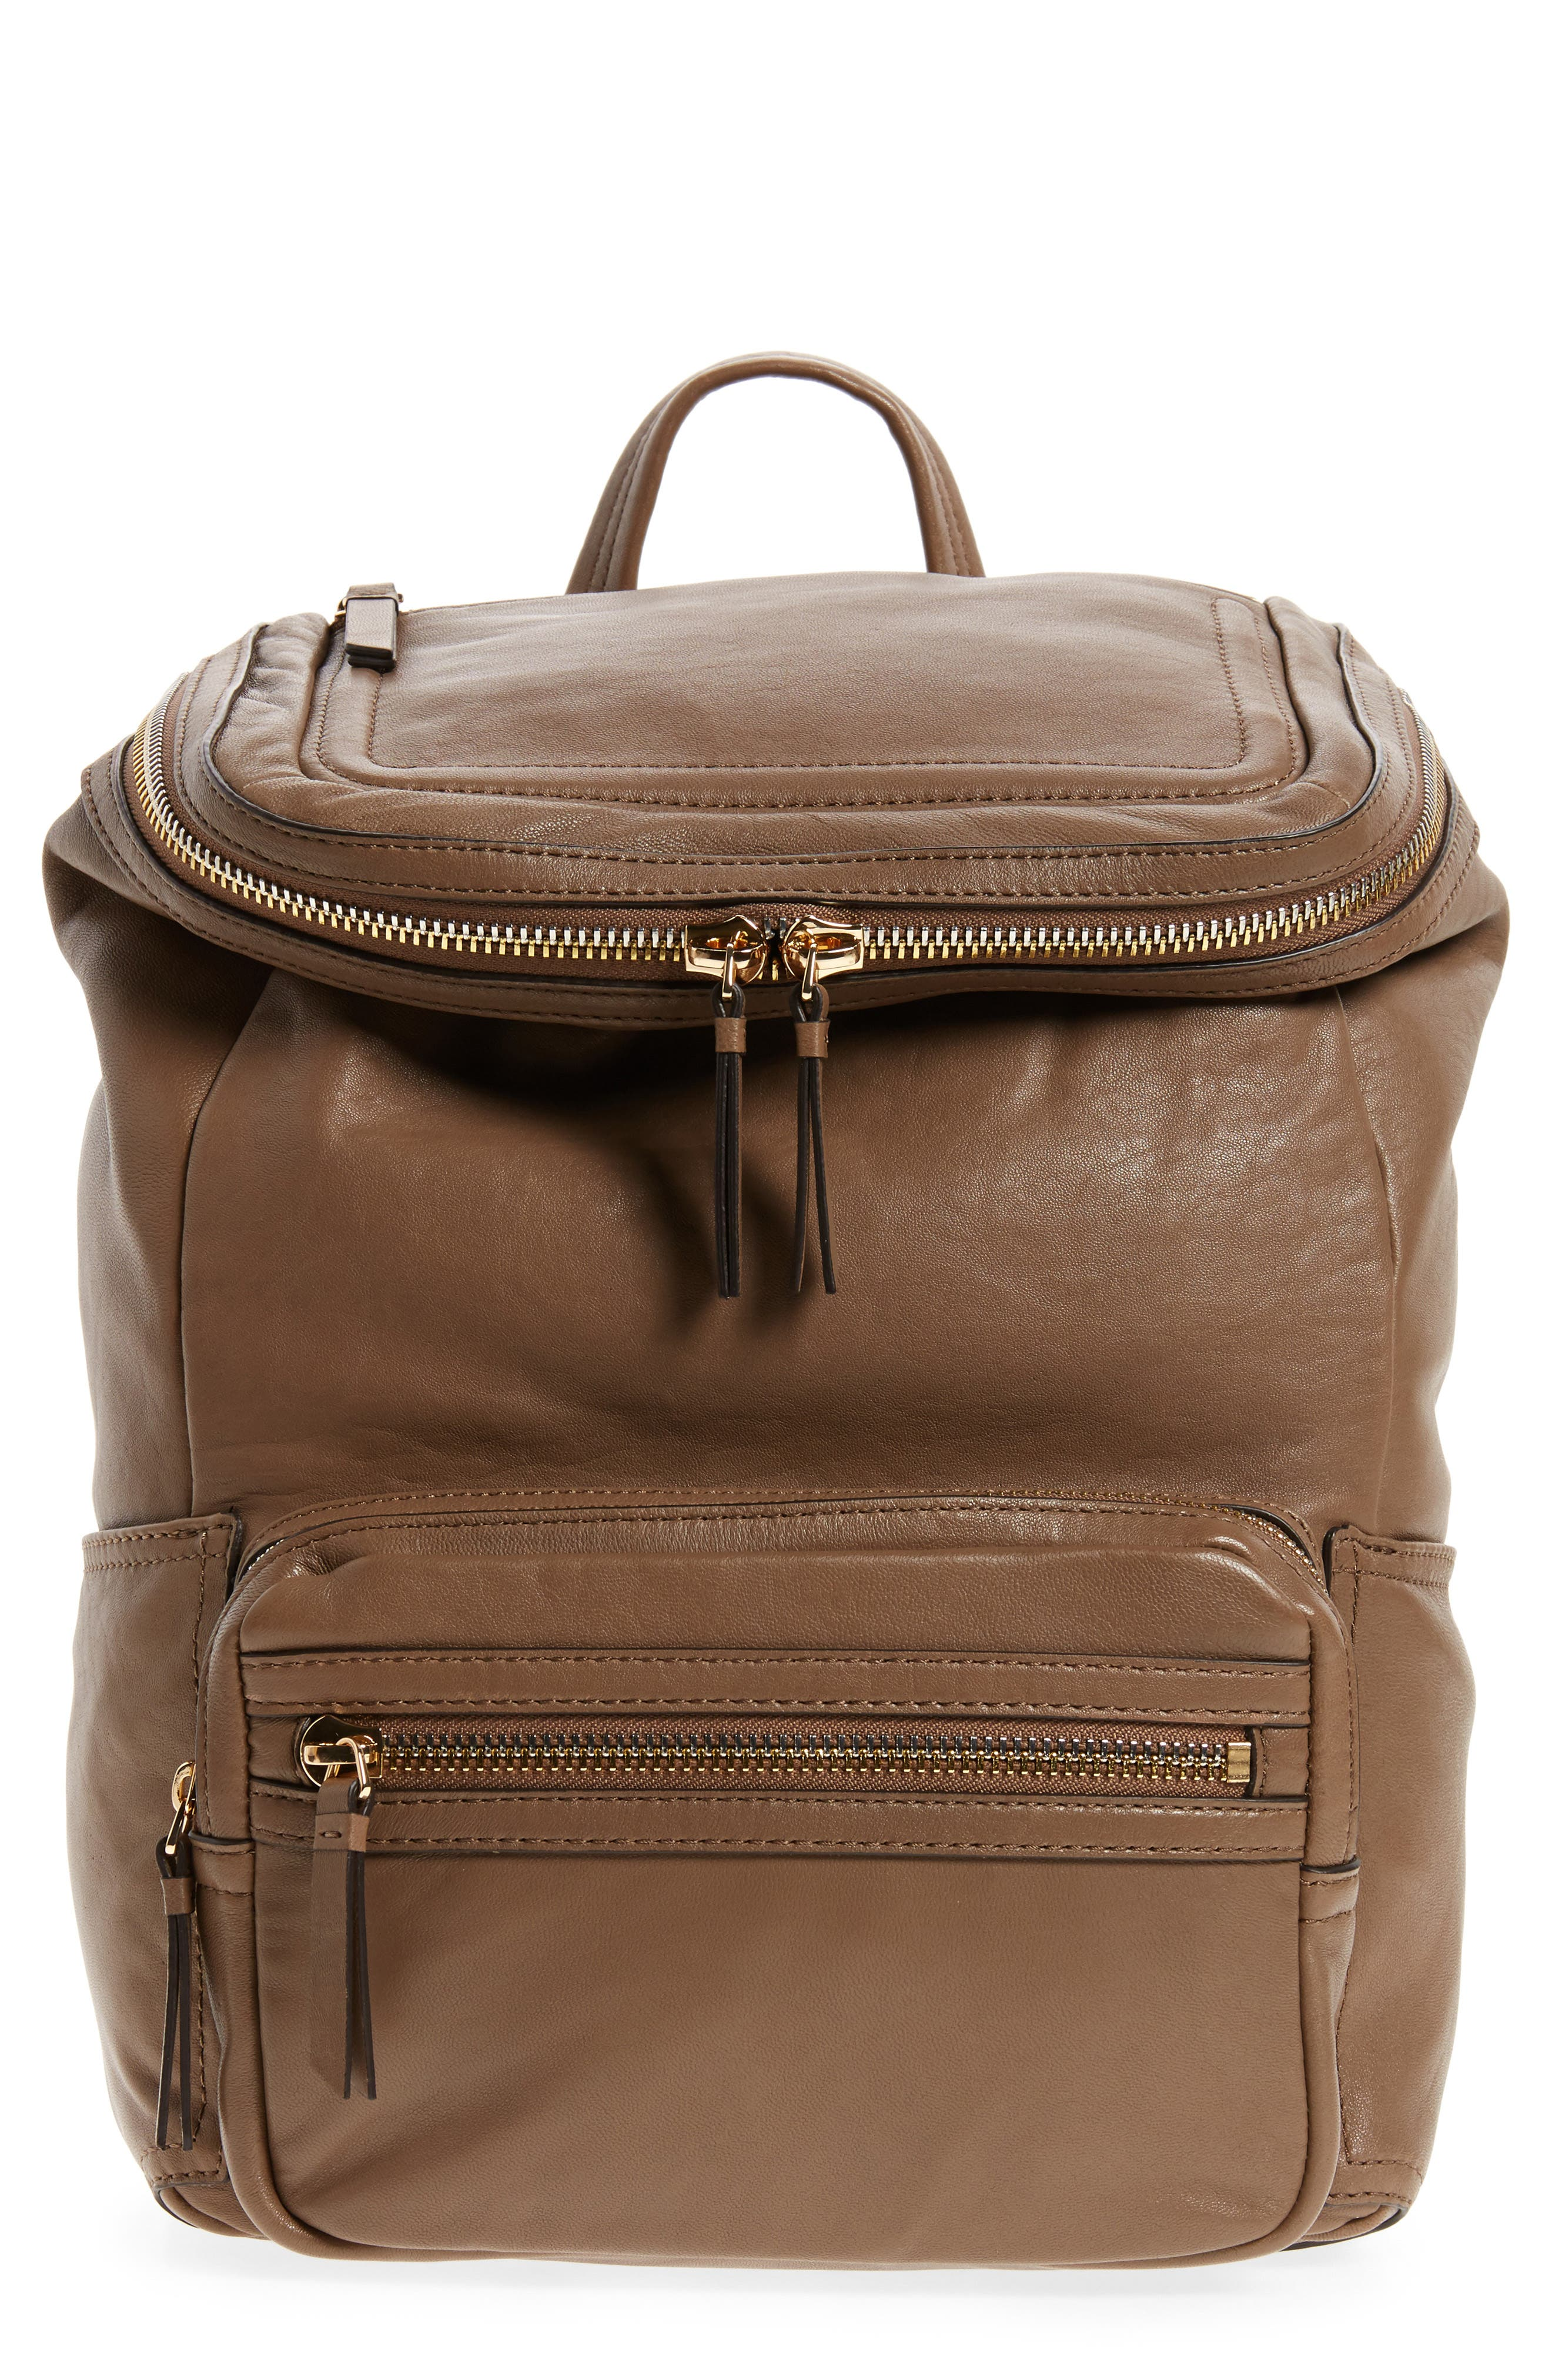 Patch Convertible Leather Backpack,                         Main,                         color, Foxy